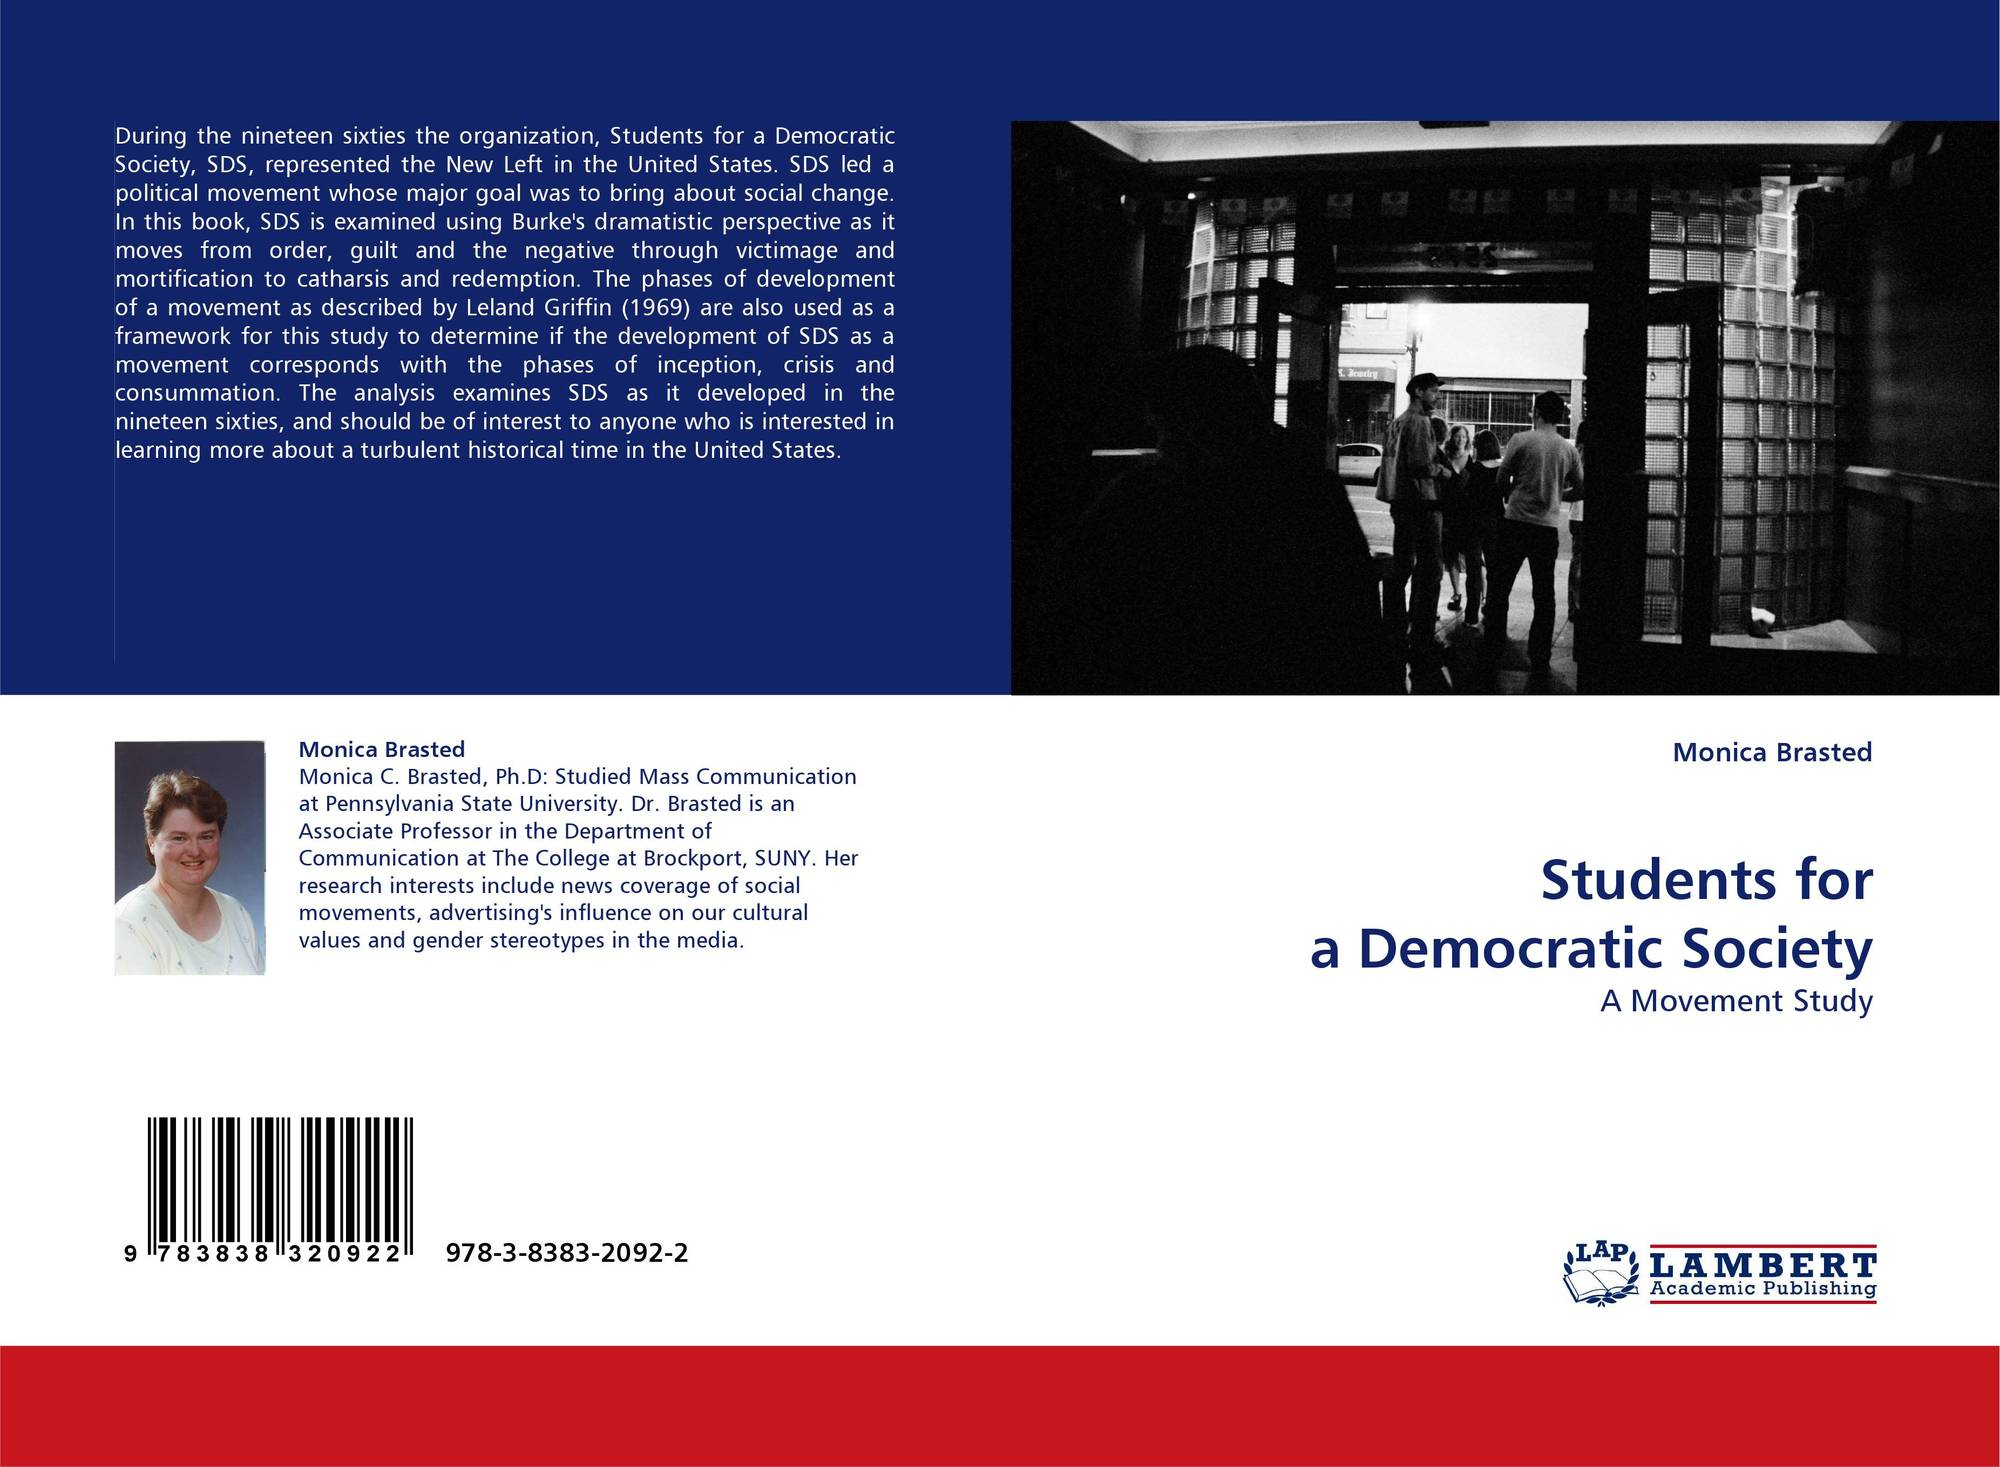 an analysis of a democratic society Using close reading and interactive activities this lesson plan explores thoreau's critique of representative democracy in civil disobedience.